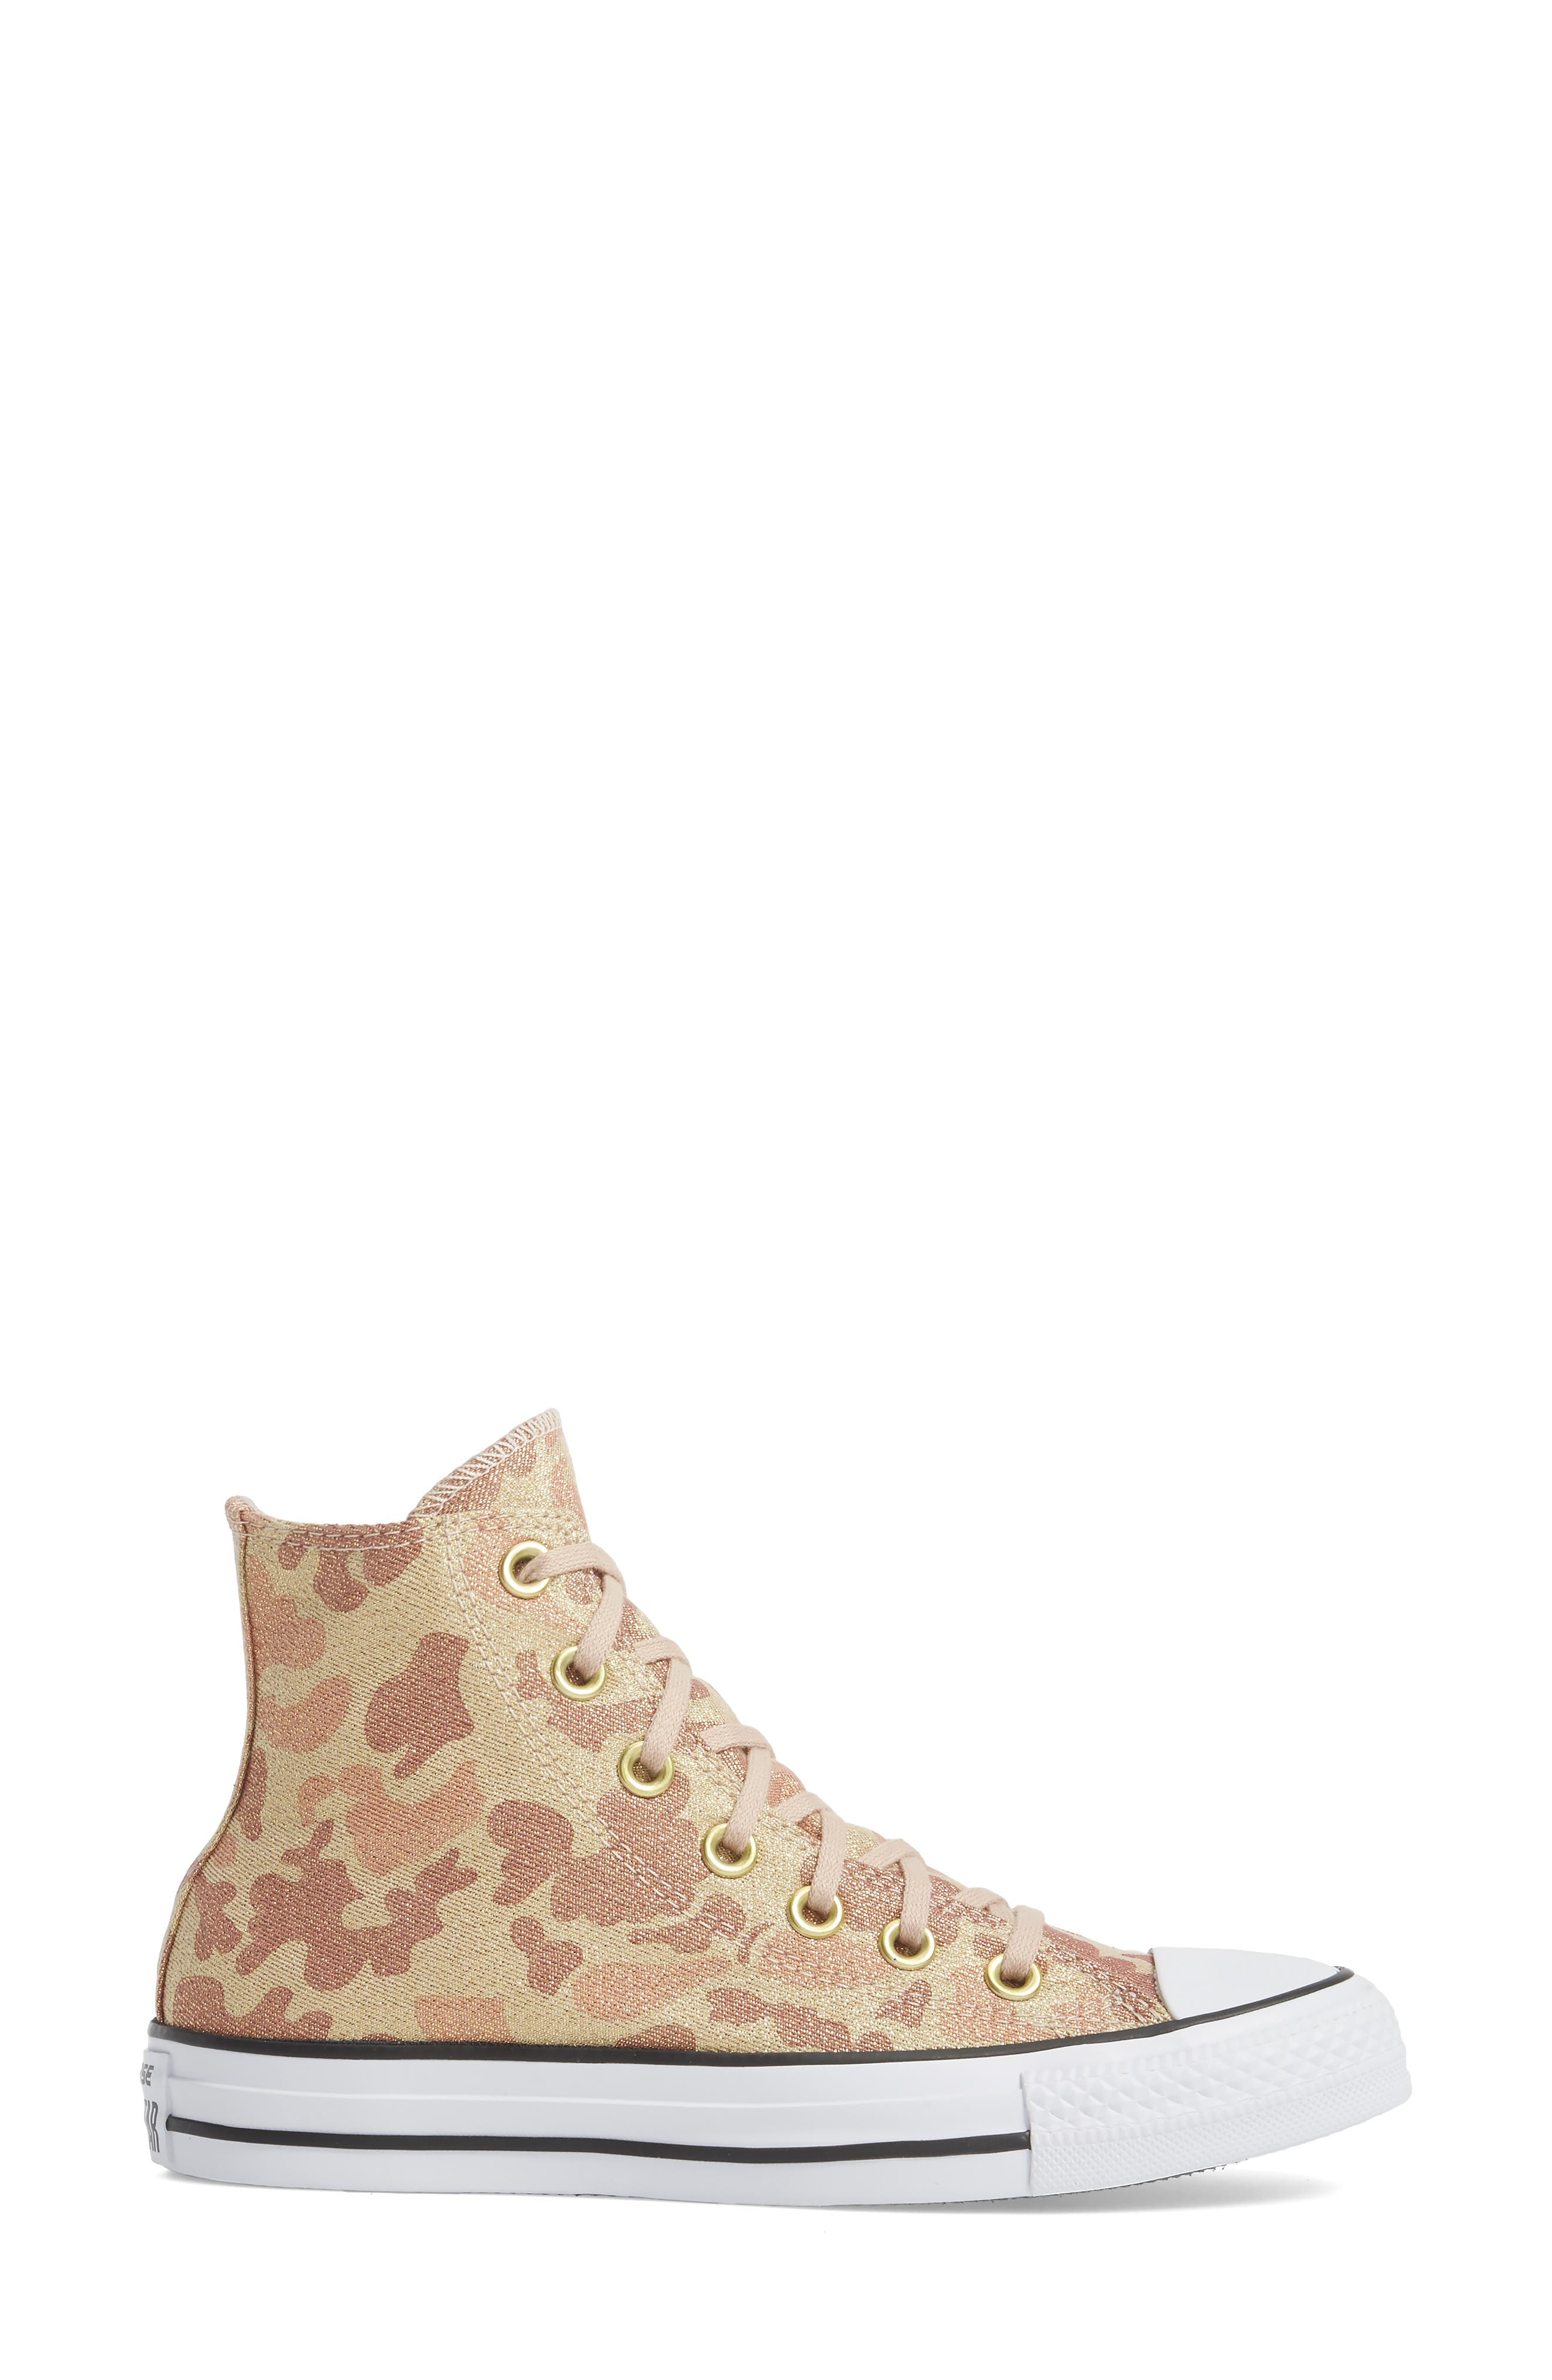 Chuck Taylor<sup>®</sup> All Star<sup>®</sup> High Top Sneaker,                             Alternate thumbnail 3, color,                             264